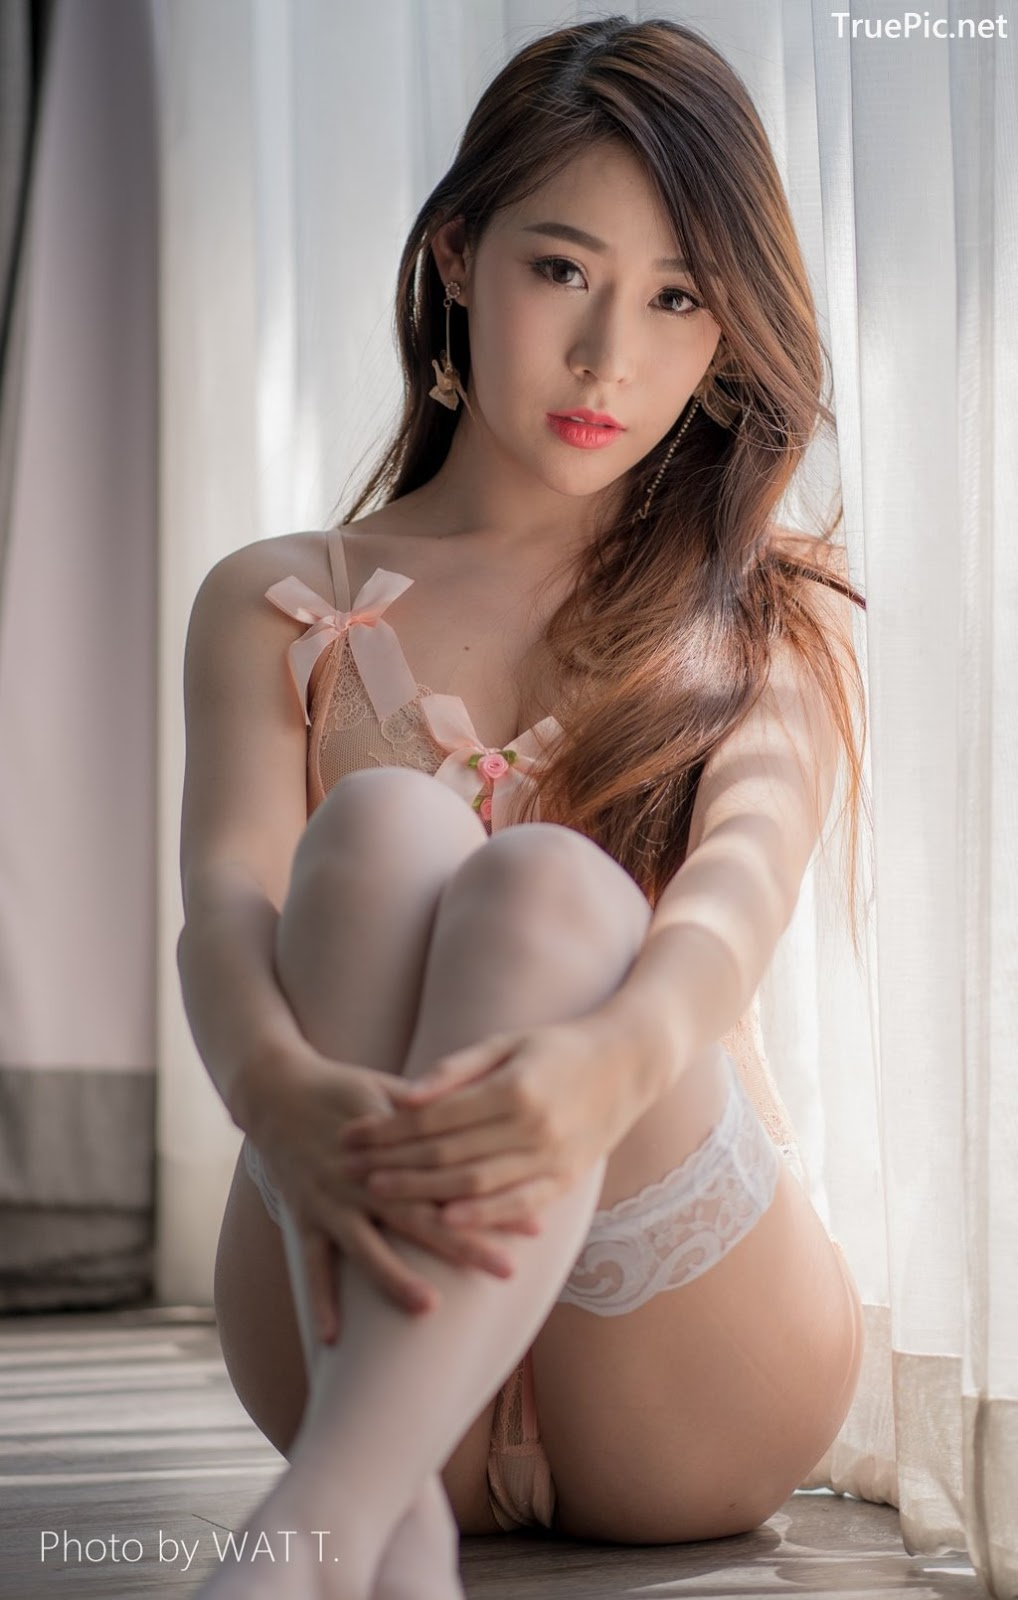 Image Thailand Model - Thipsuda Jitaree - Pink Sky Lingerie - TruePic.net - Picture-10